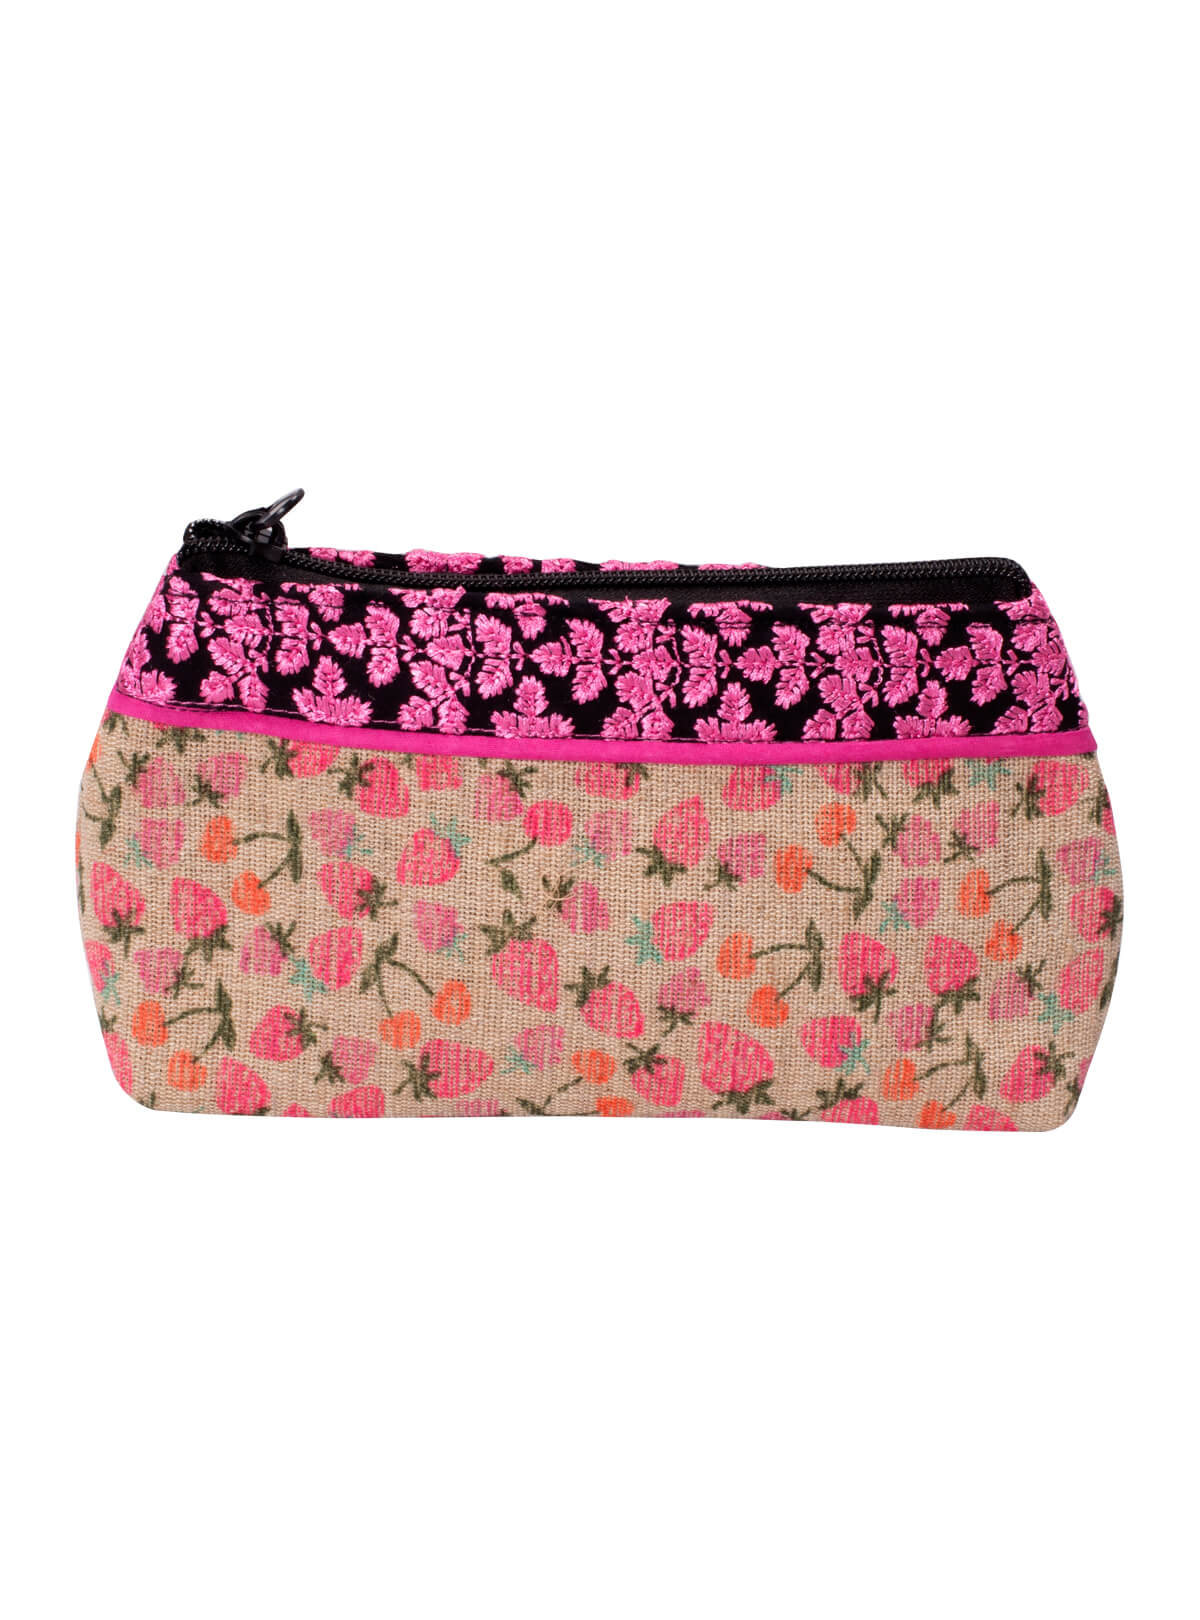 Pink & Ash Cotton Ladies Purse